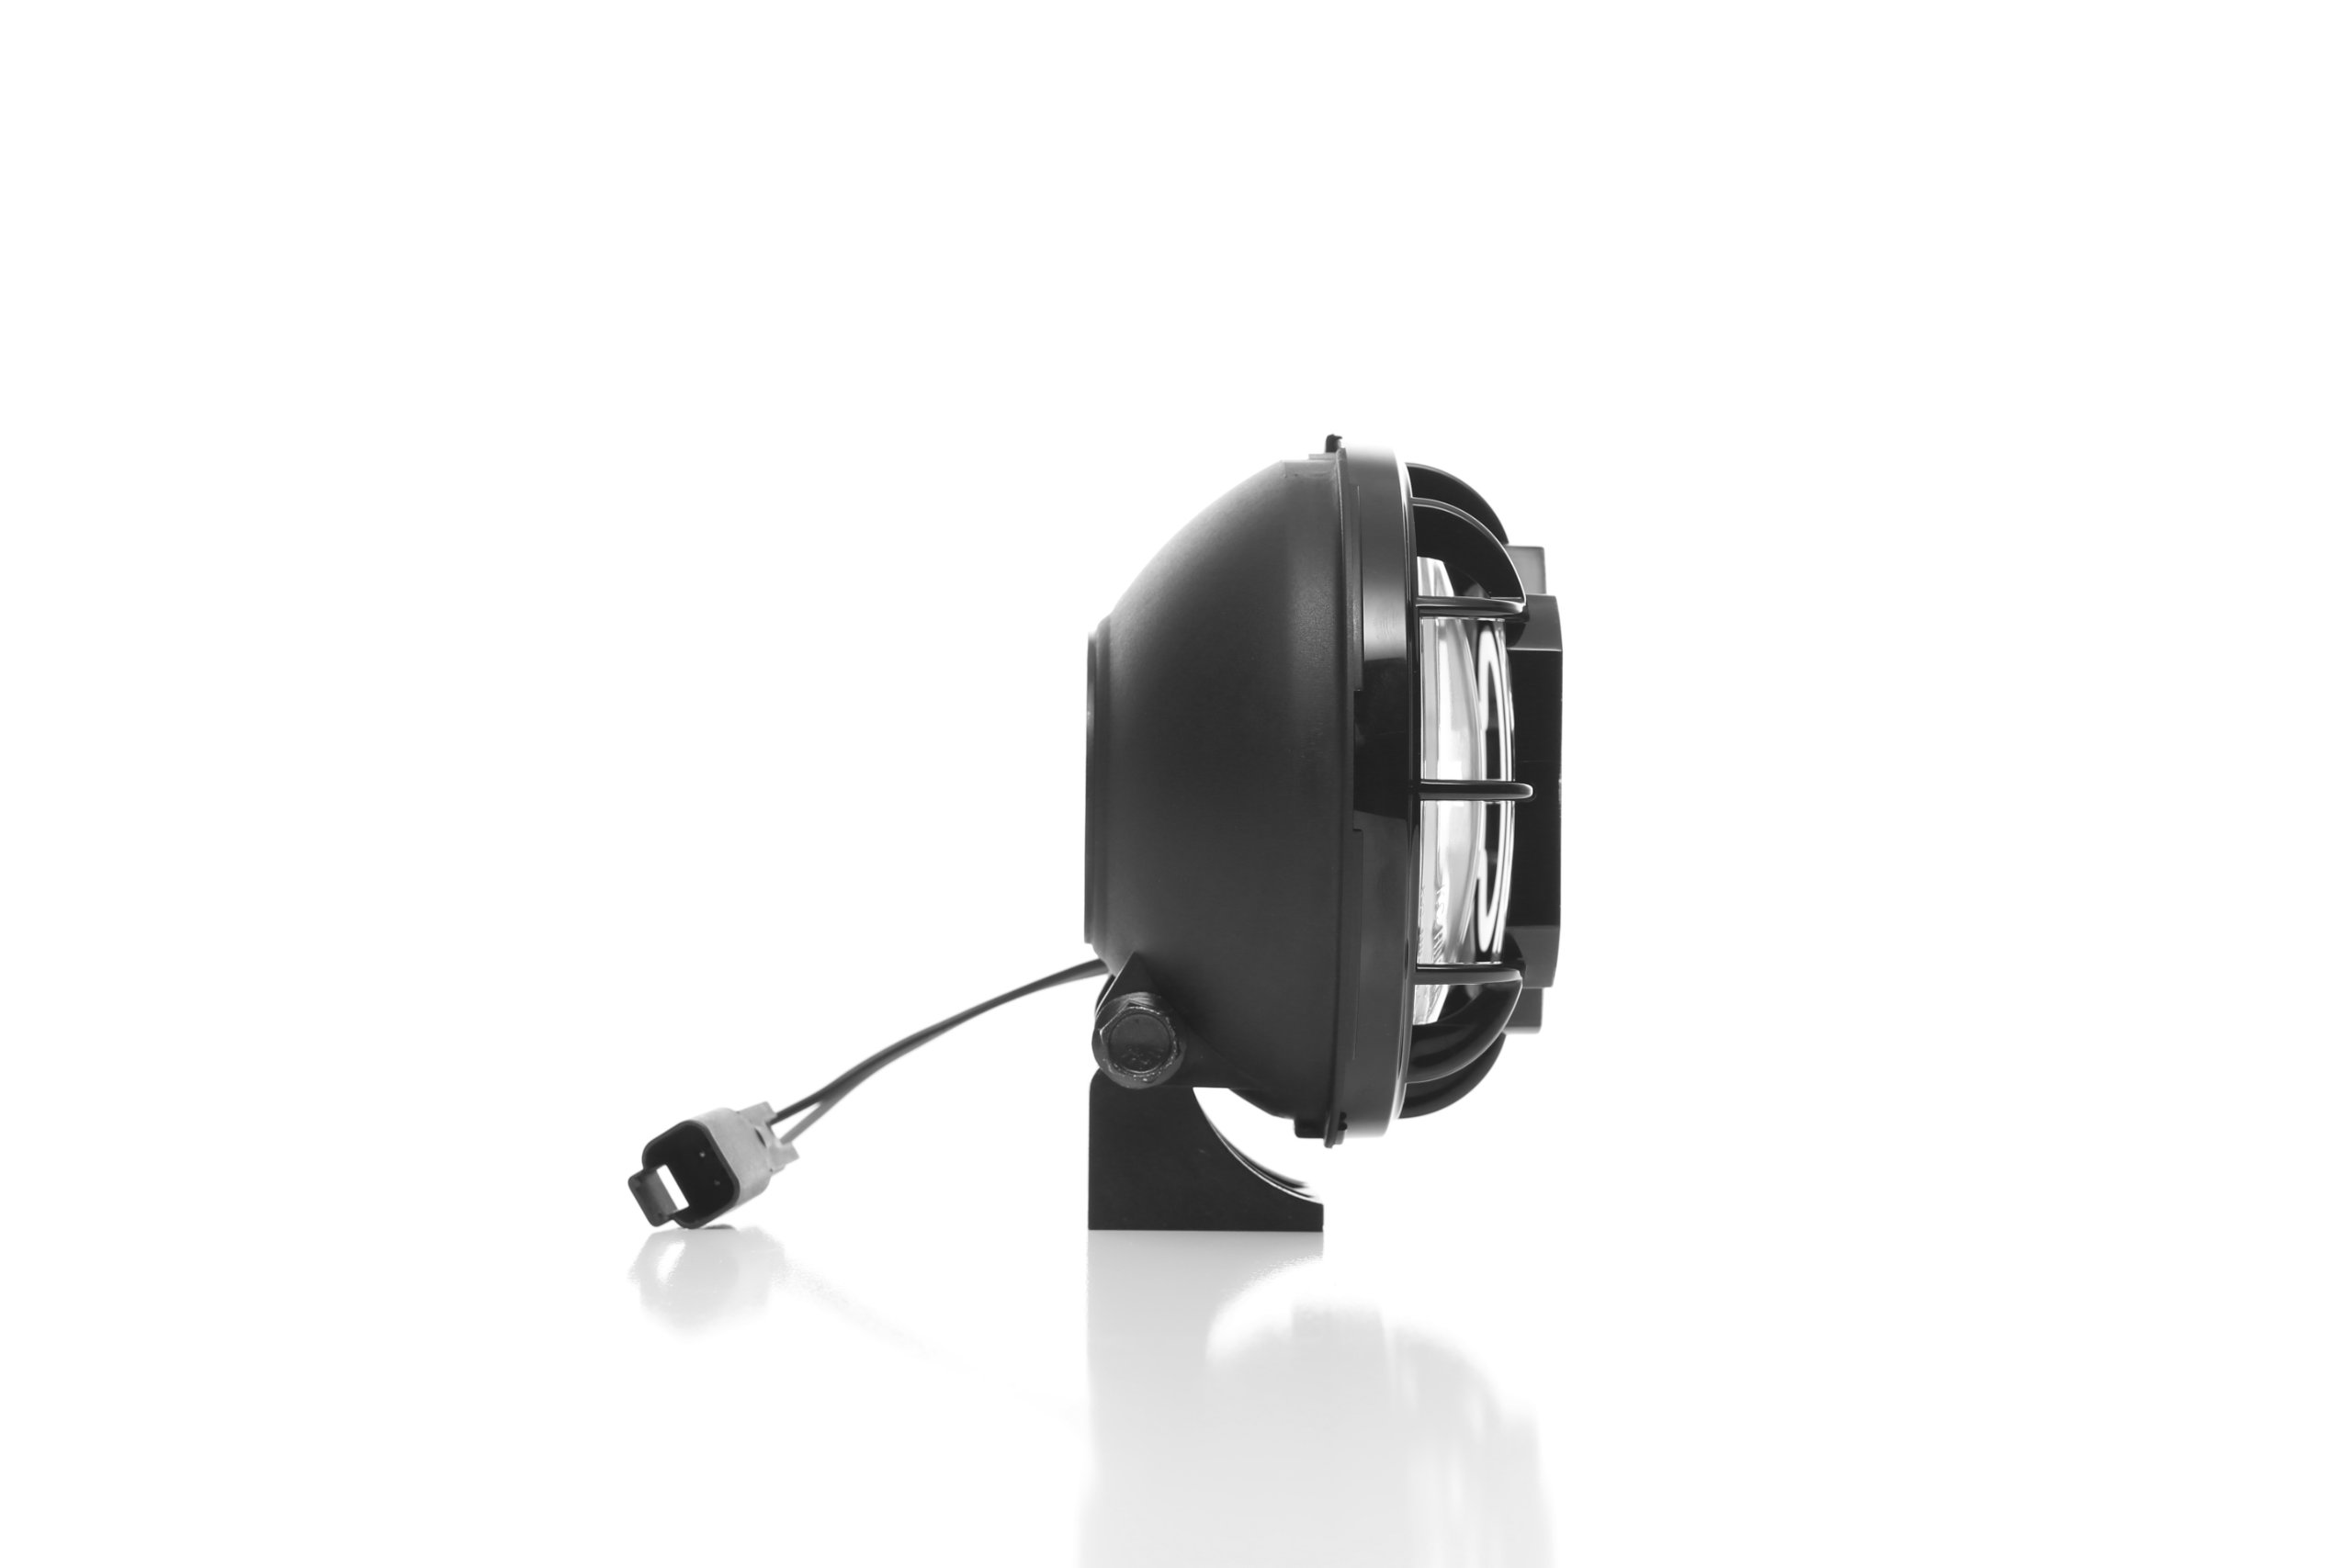 KC HiLiTES 450 Apollo Pro 5'' 55w Spot Beam Light with Integrated Stone Guard - Pair Pack System